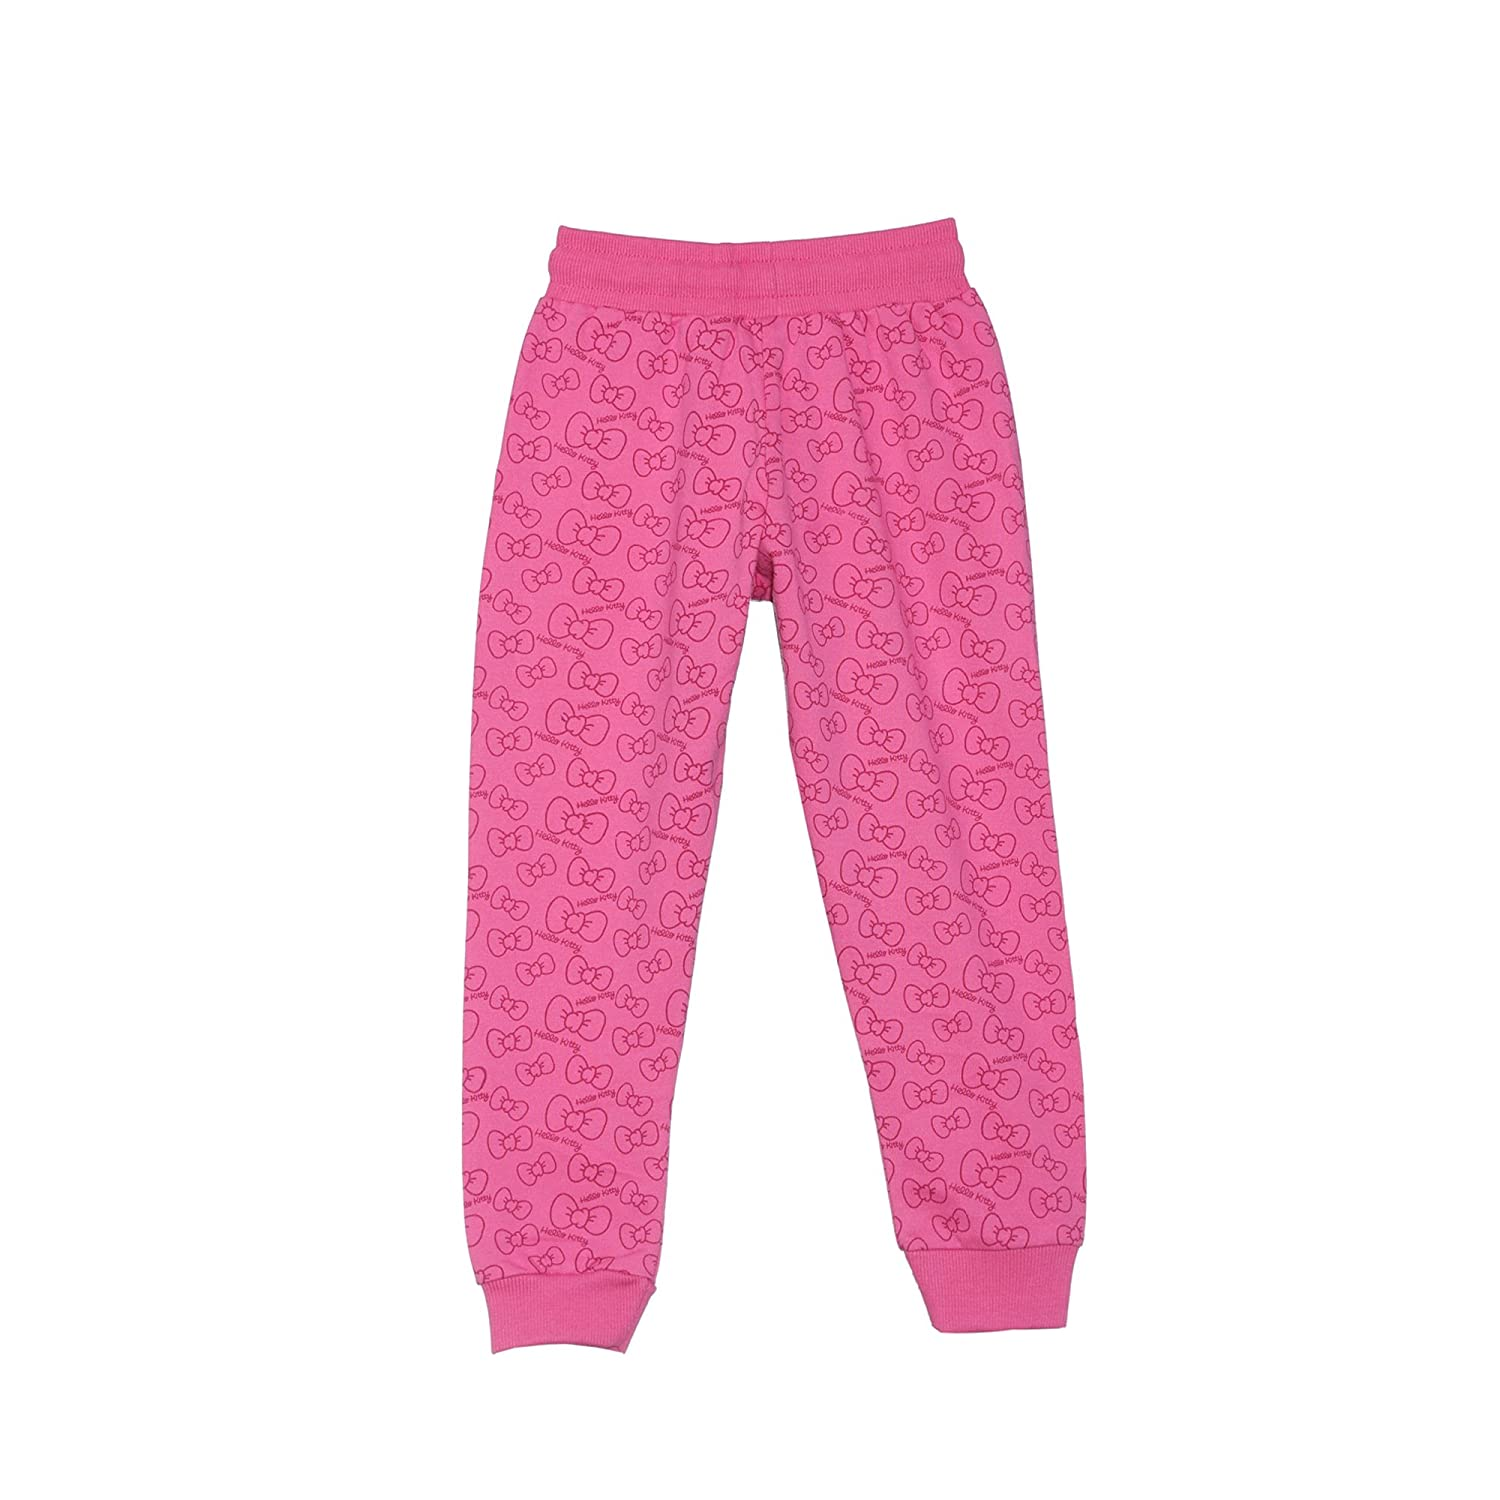 021942040 Hello Kitty Girls' Regular Fit Cotton Tracksuit HT1FPB1339_Pink  Carnation_11-12 Years: Amazon.in: Clothing & Accessories